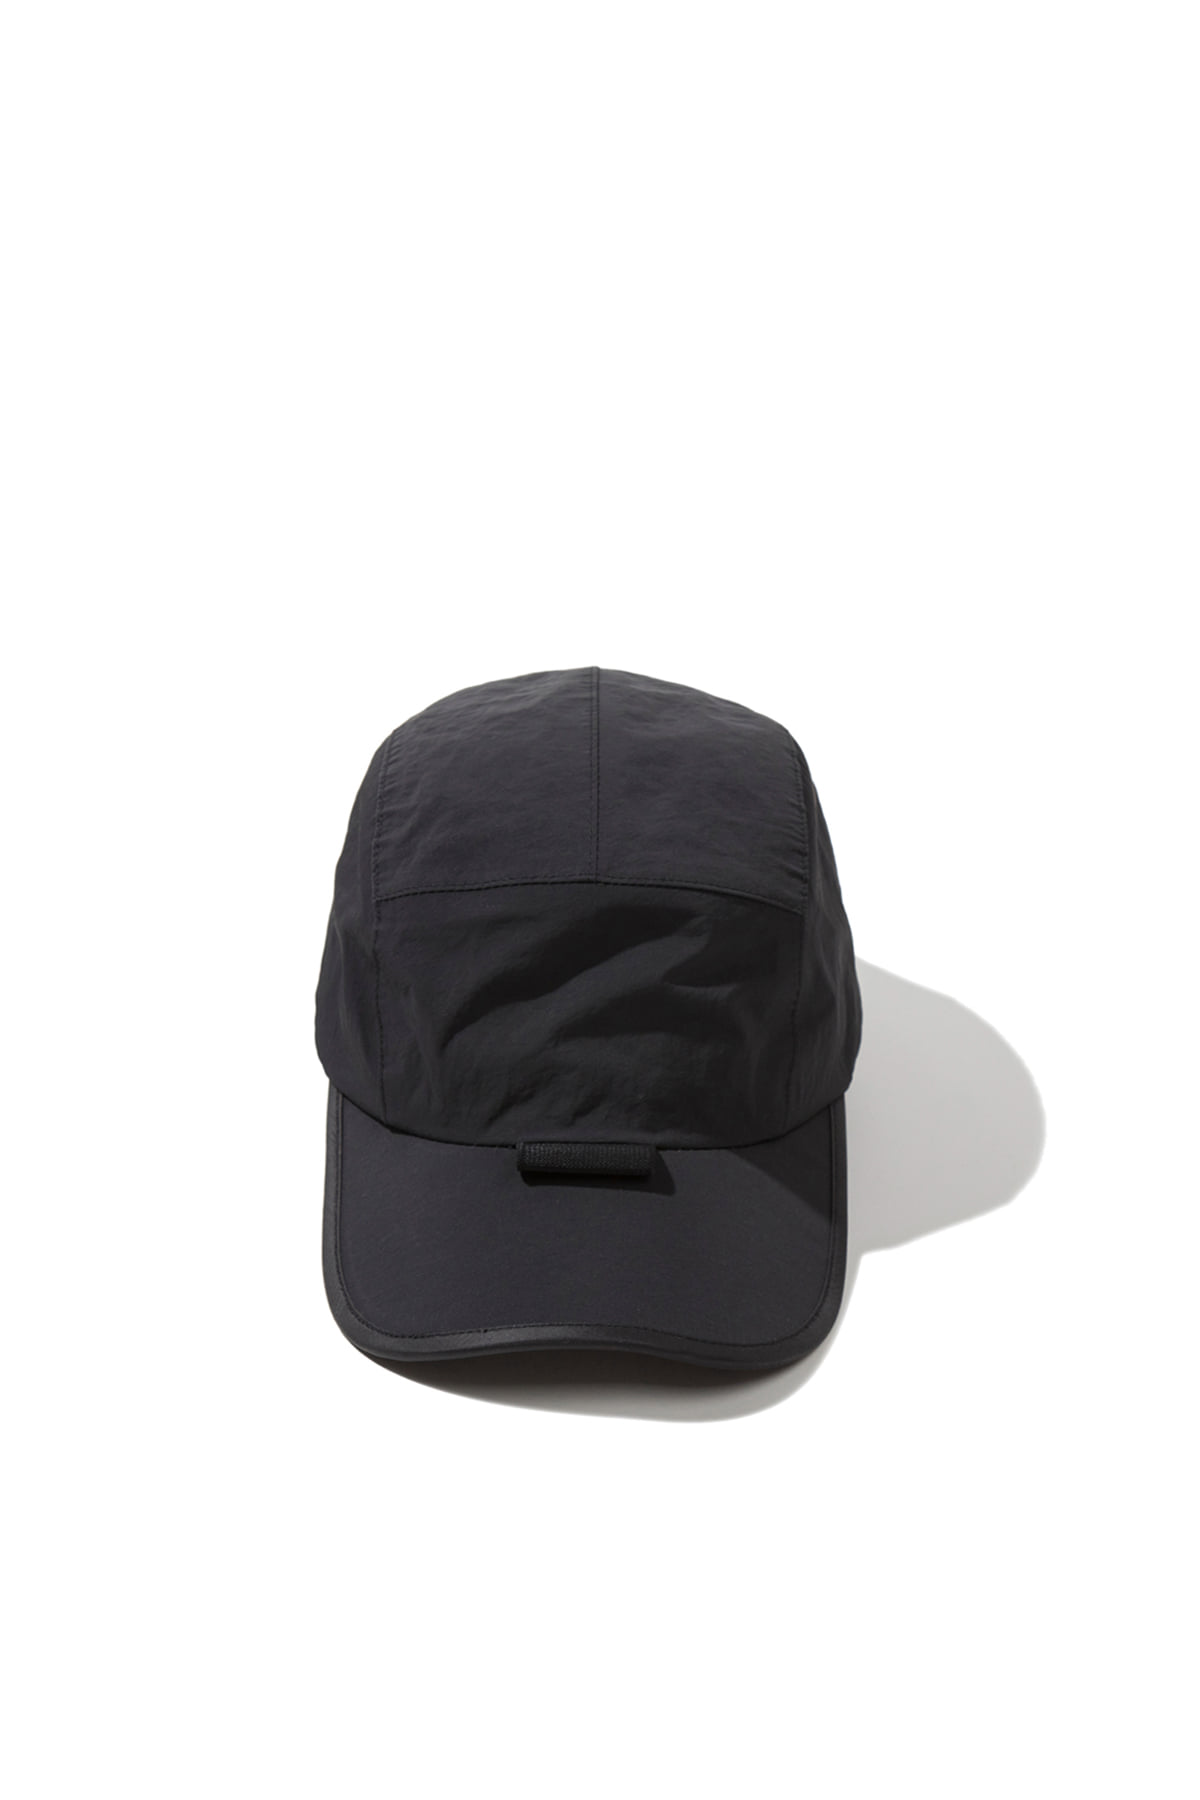 Blankof : HLG 01 C2 Volley Cap (Black)